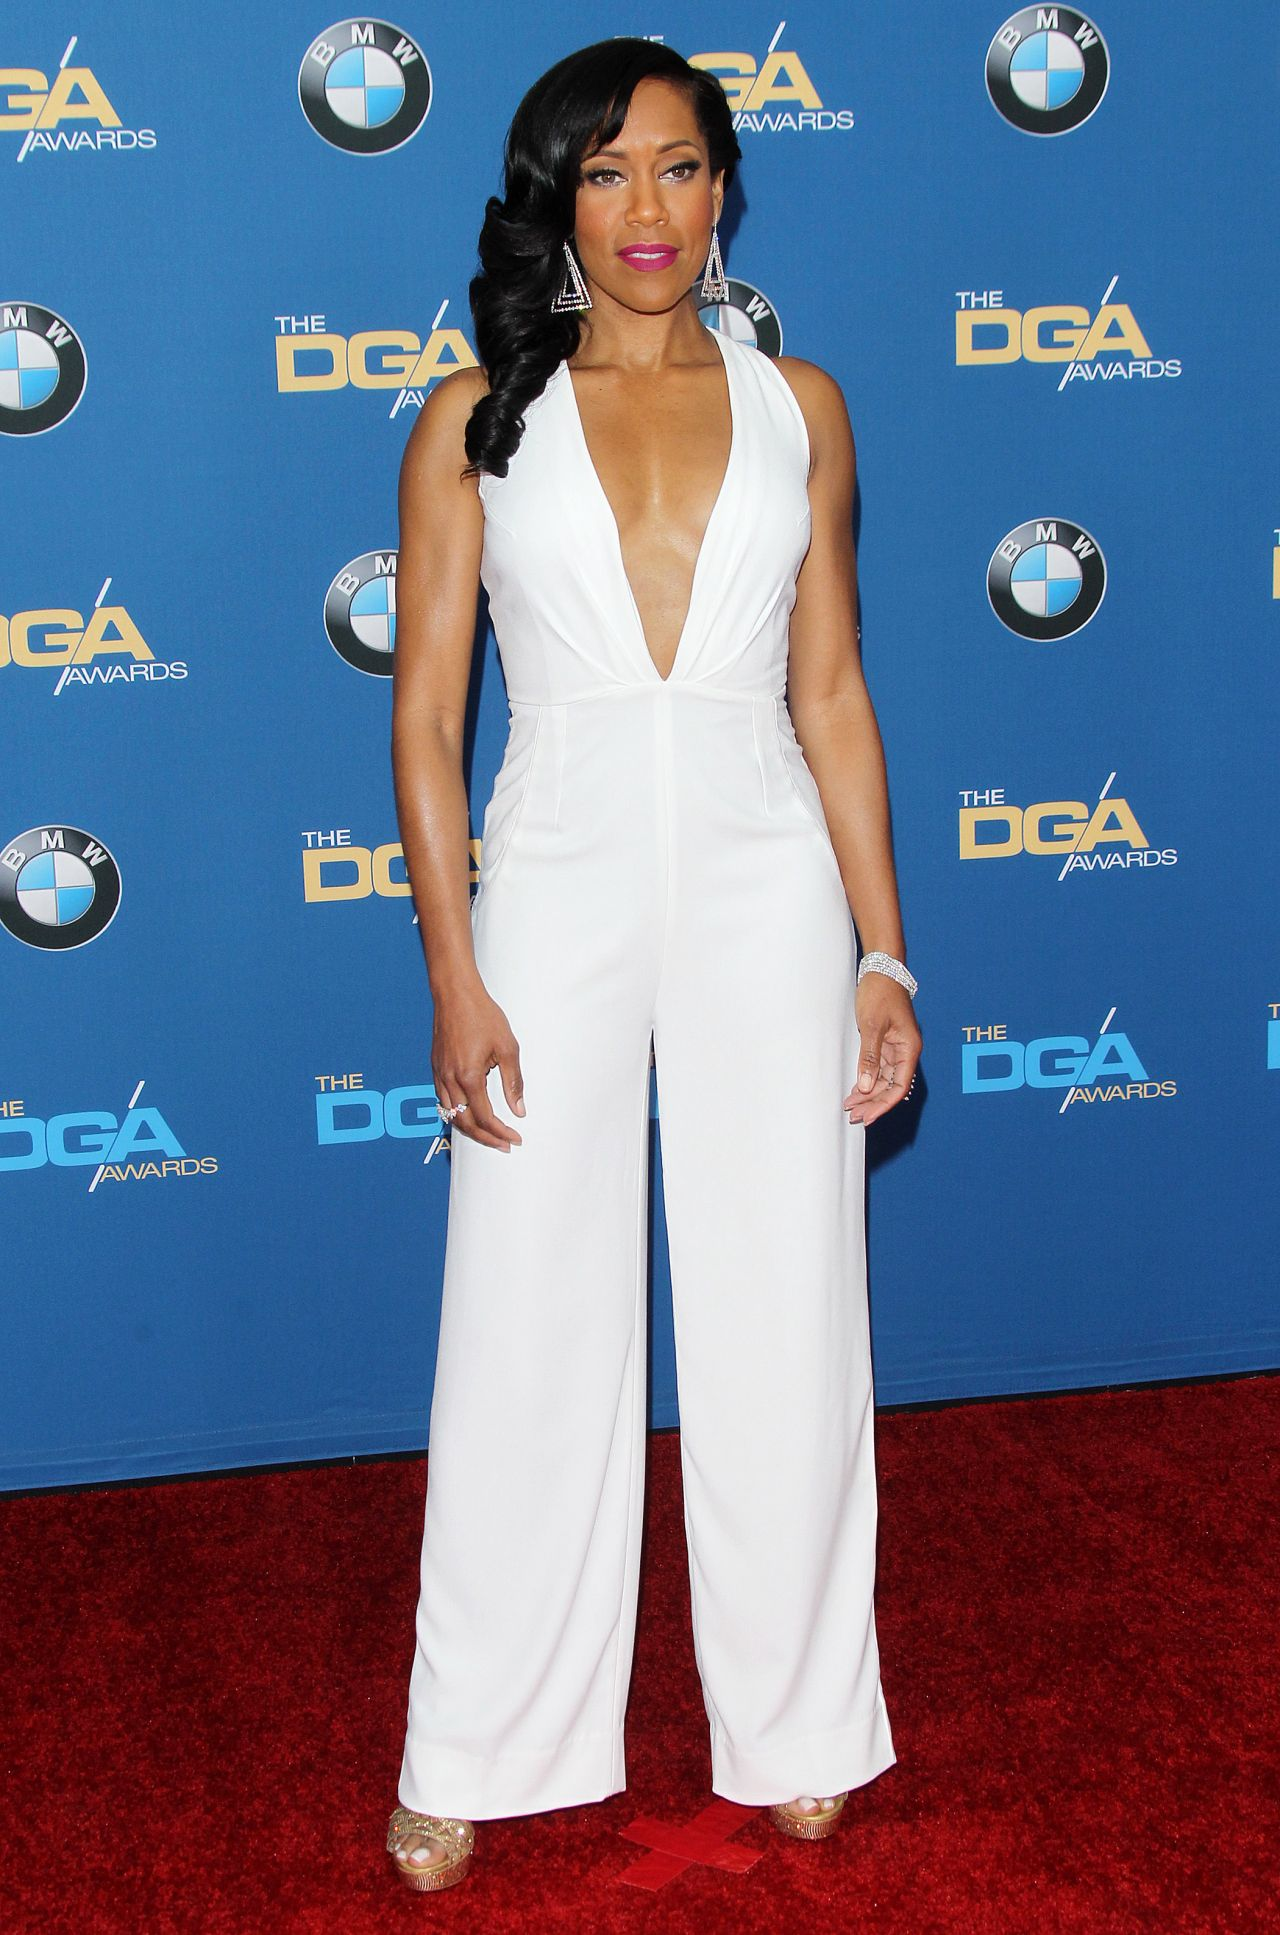 regina-king-2016-directors-guild-of-america-awards-in-los-angeles-ca-1